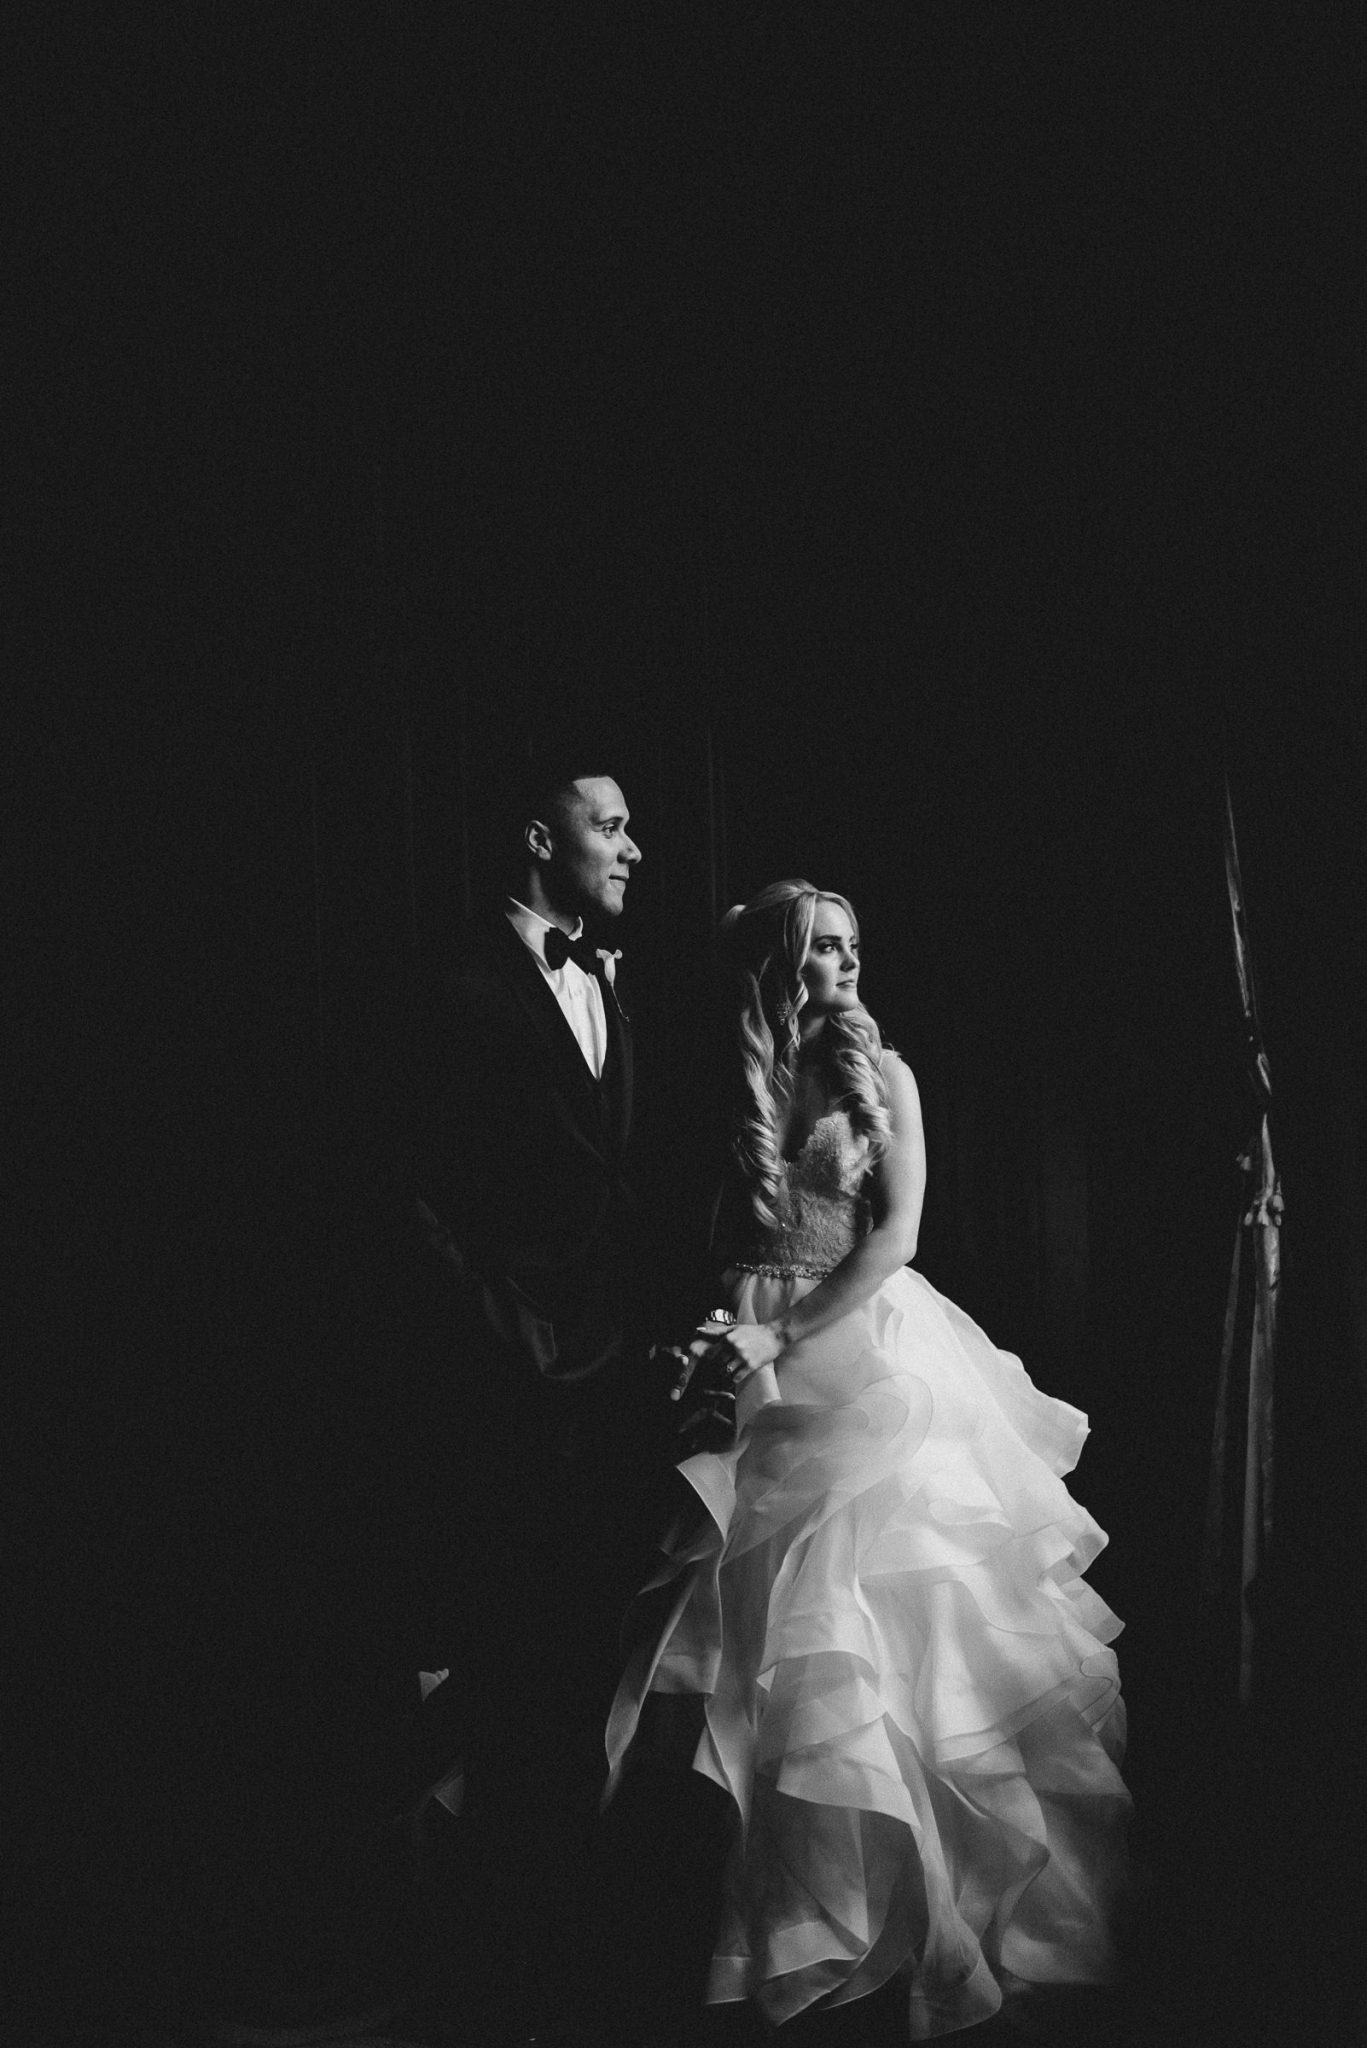 One King Toronto New Years Eve Wedding - black and white portrait